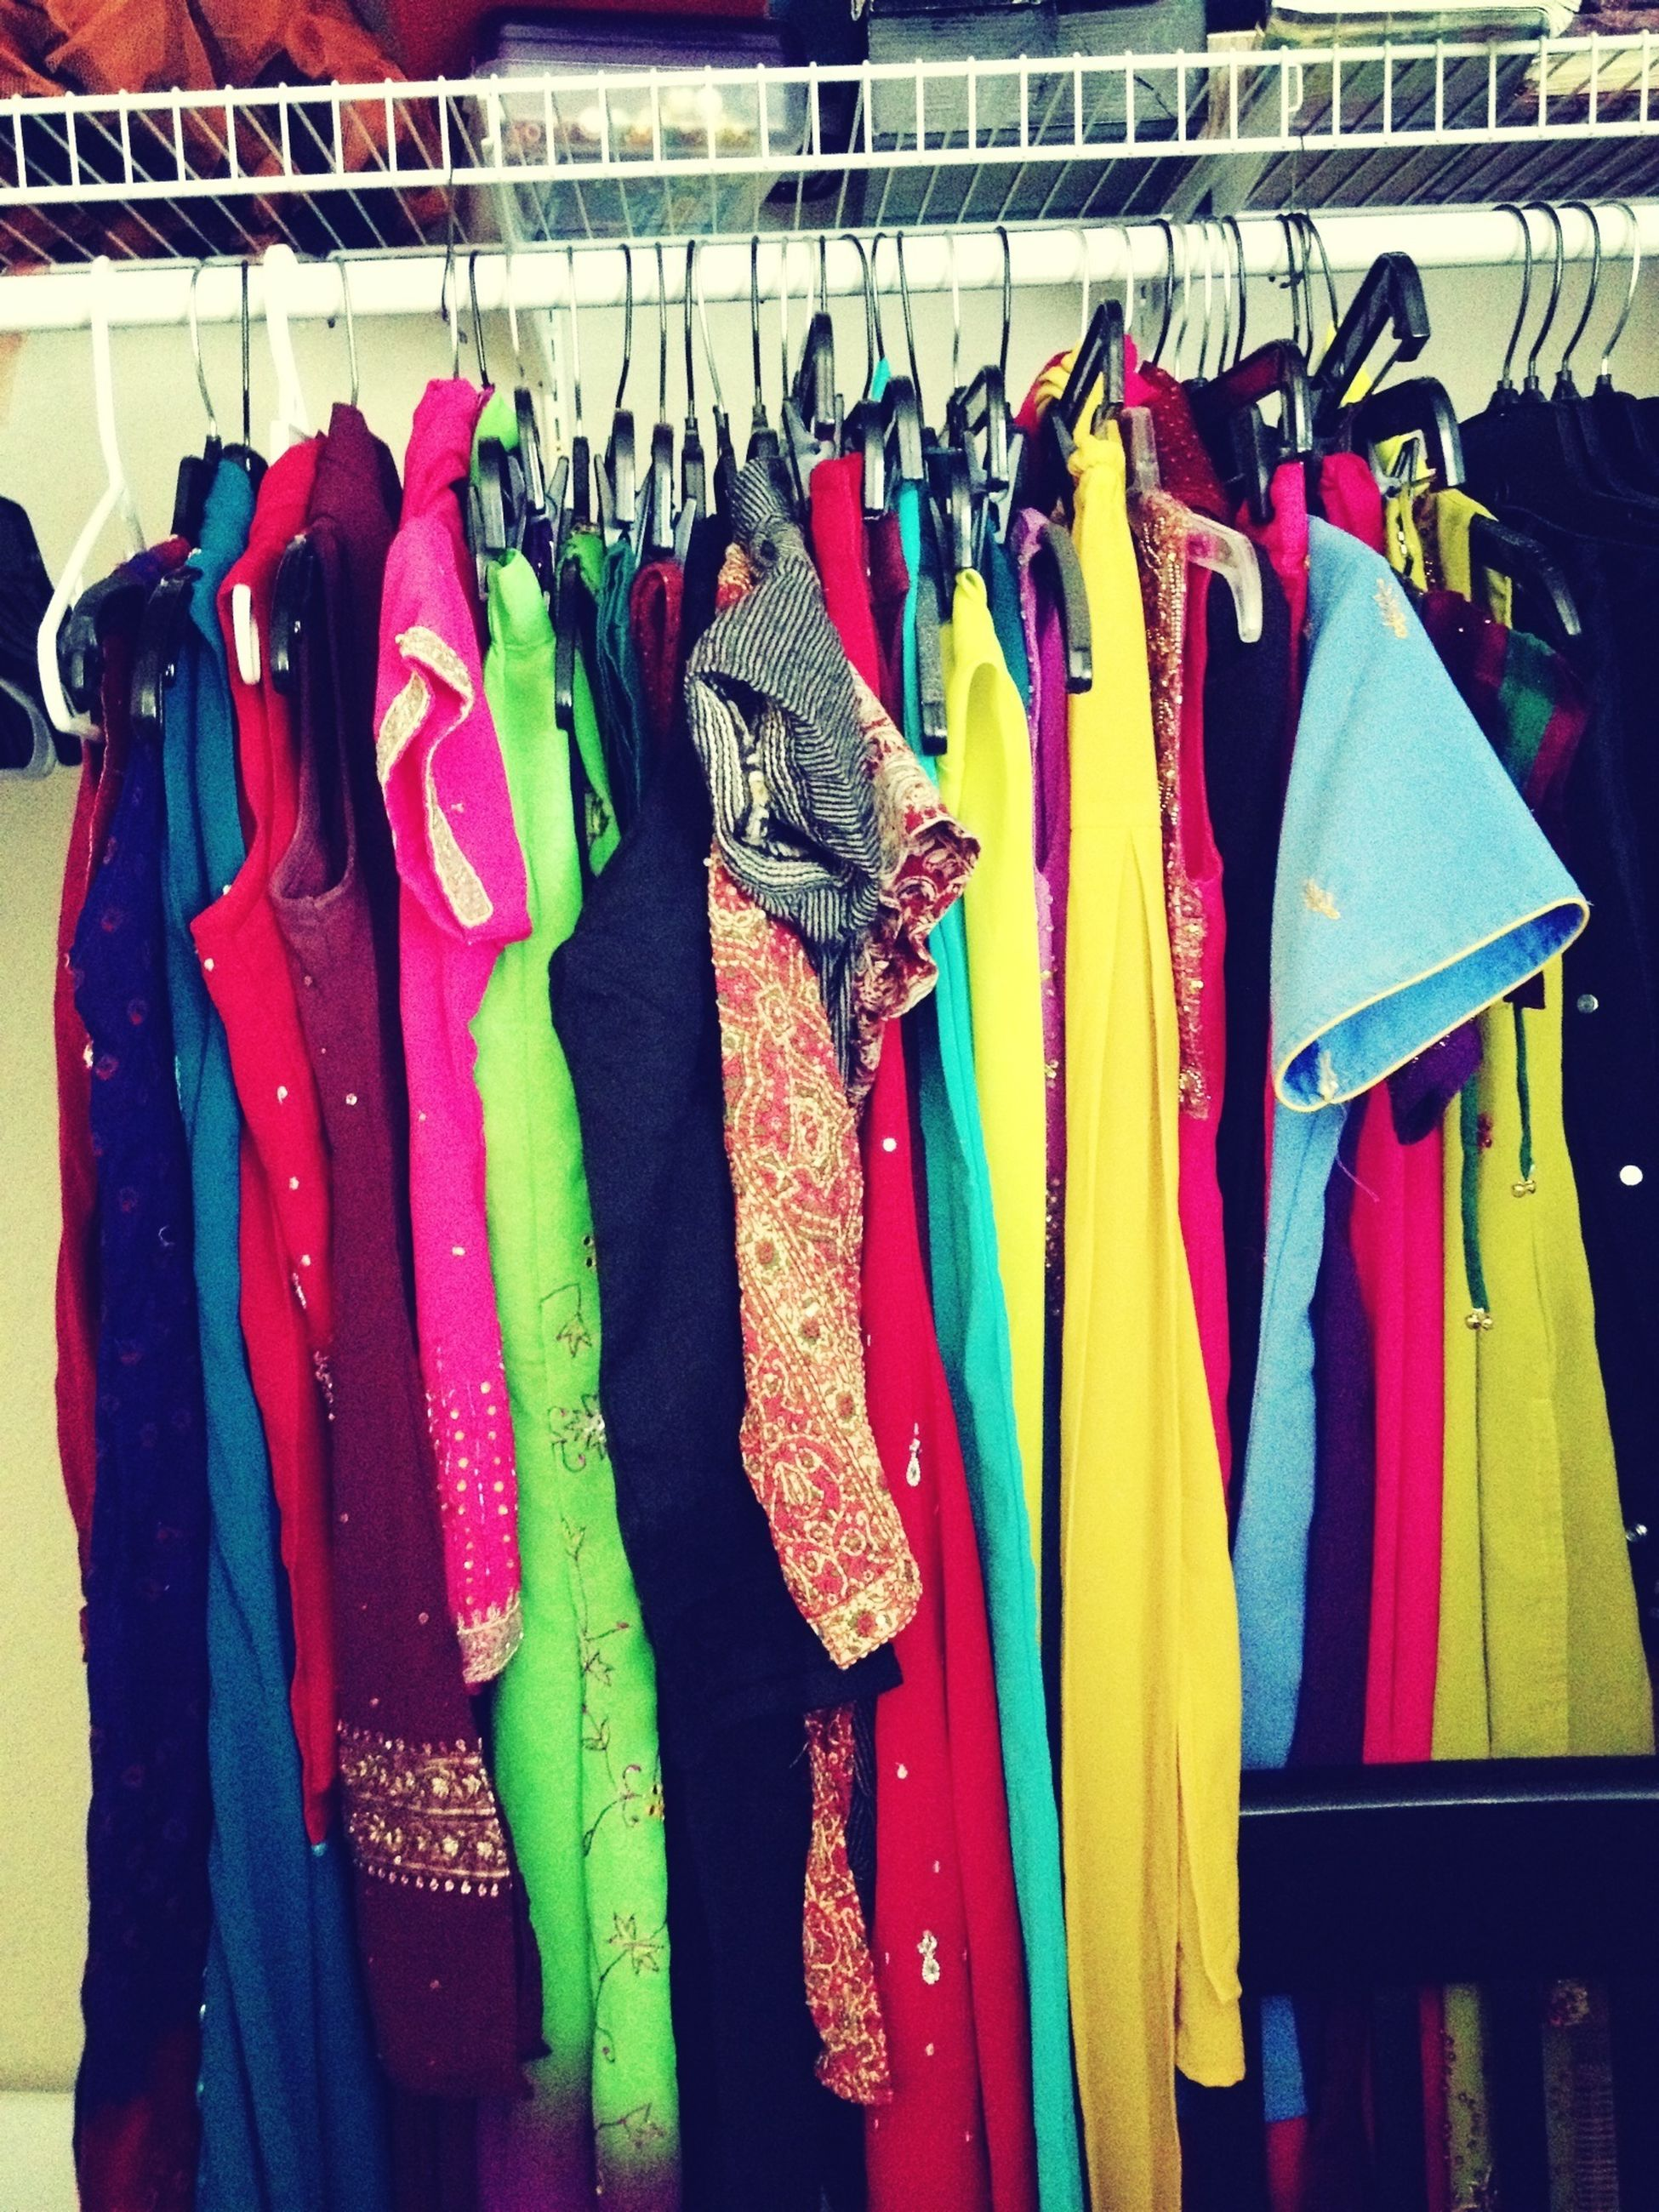 hanging, variation, for sale, choice, retail, market stall, clothing, multi colored, large group of objects, market, store, arrangement, sale, abundance, in a row, display, drying, collection, shop, indoors